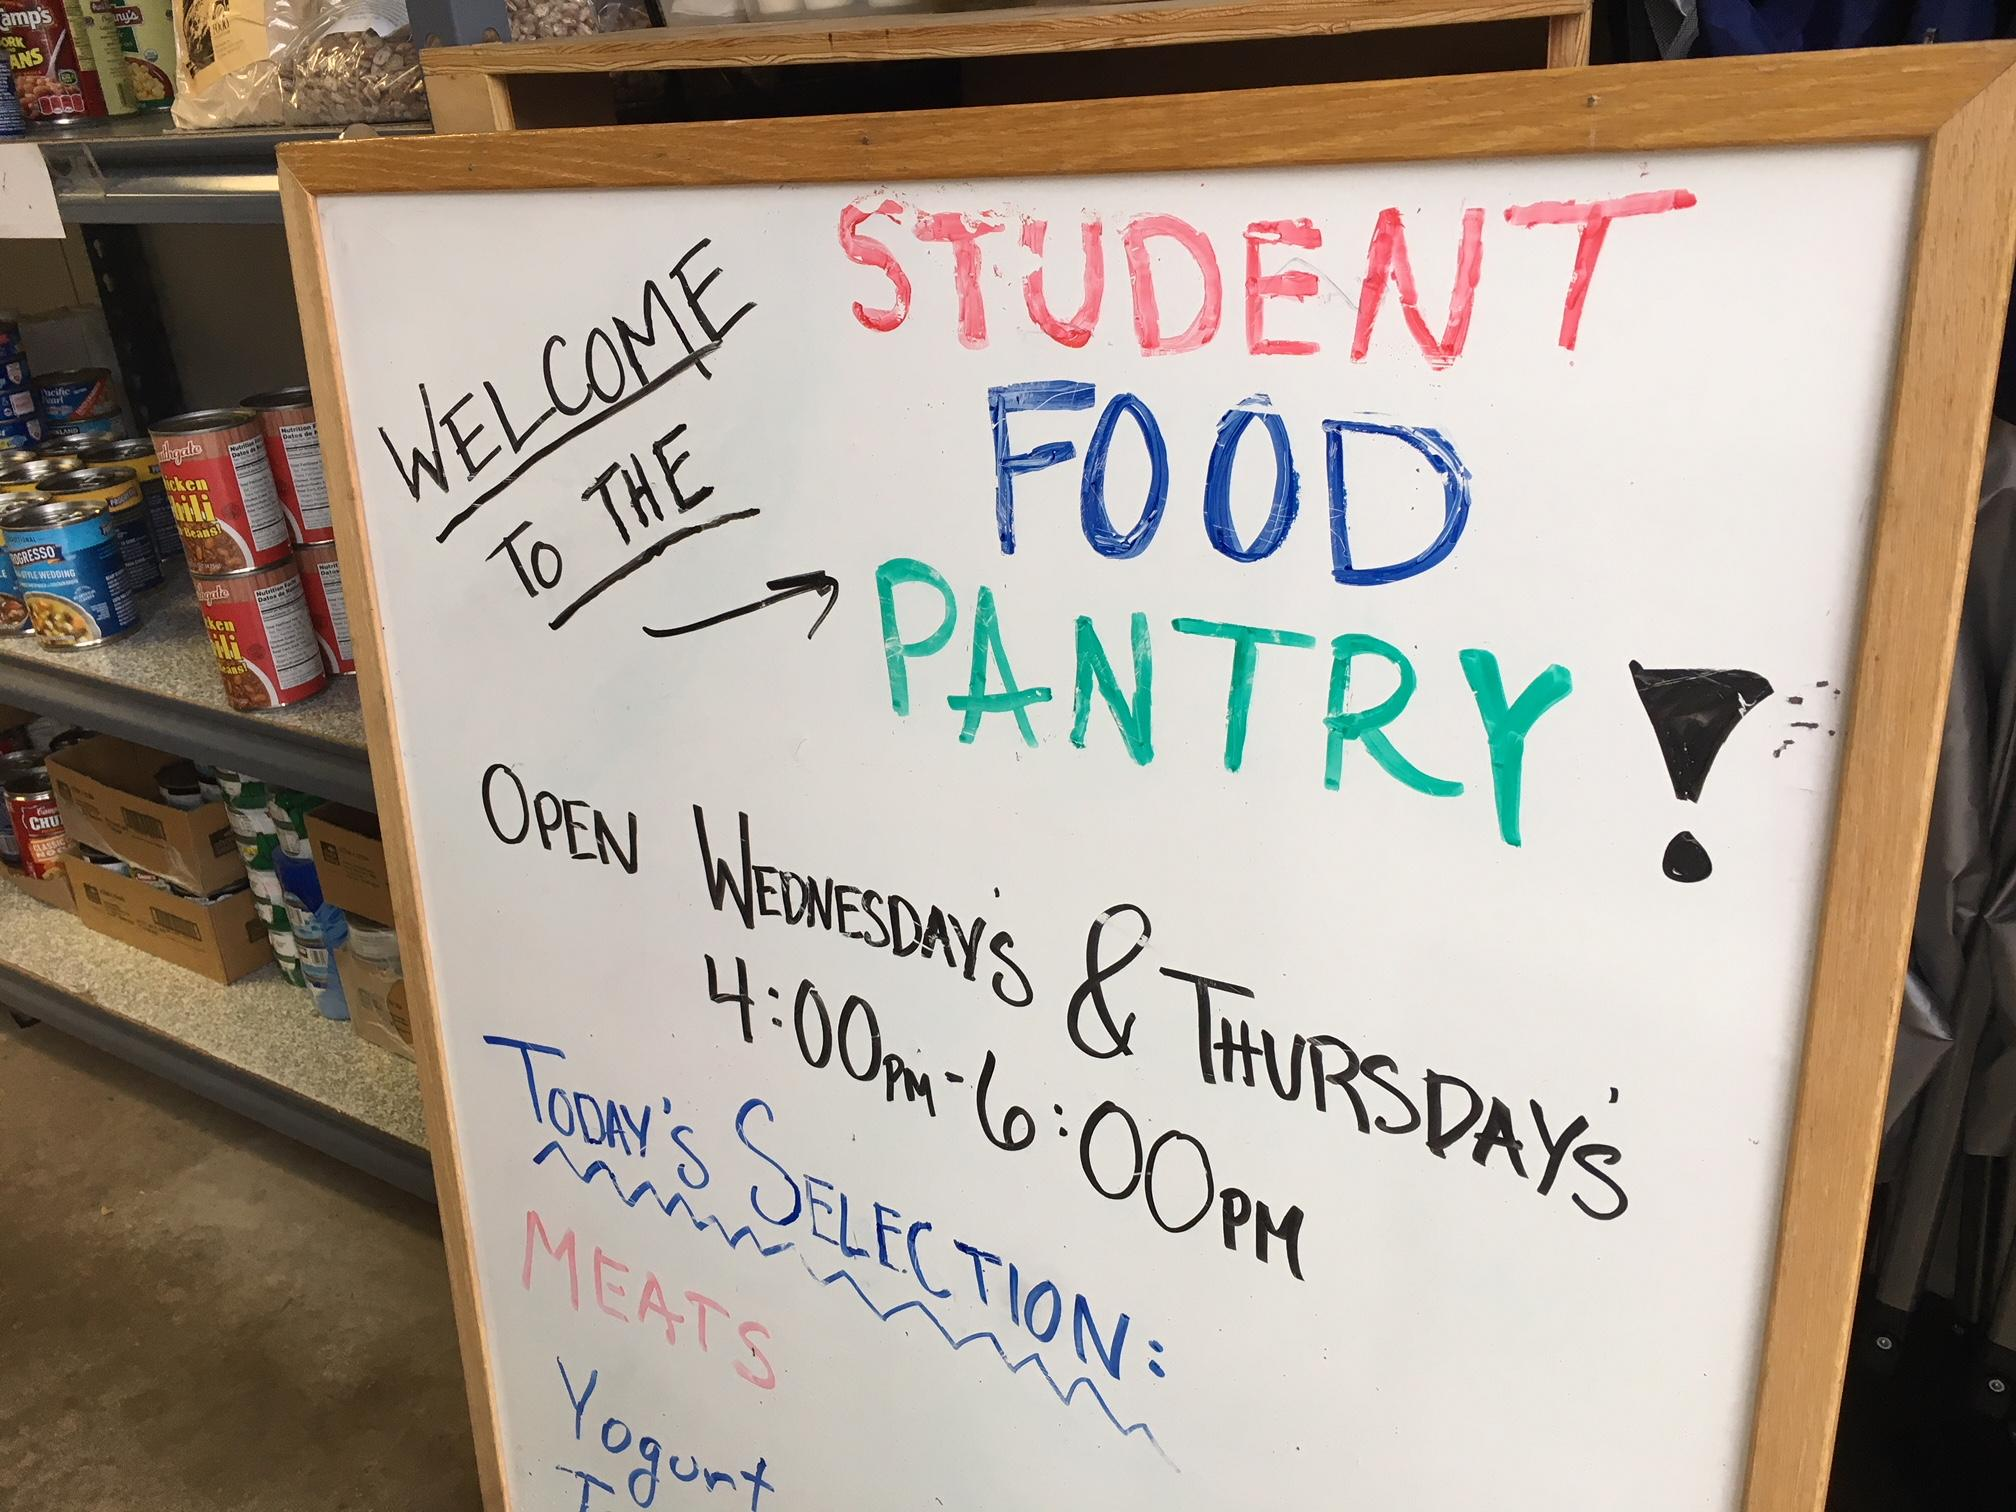 The Student Food Pantry helps local college students get nutritious food. Photo by Ellen Meny.